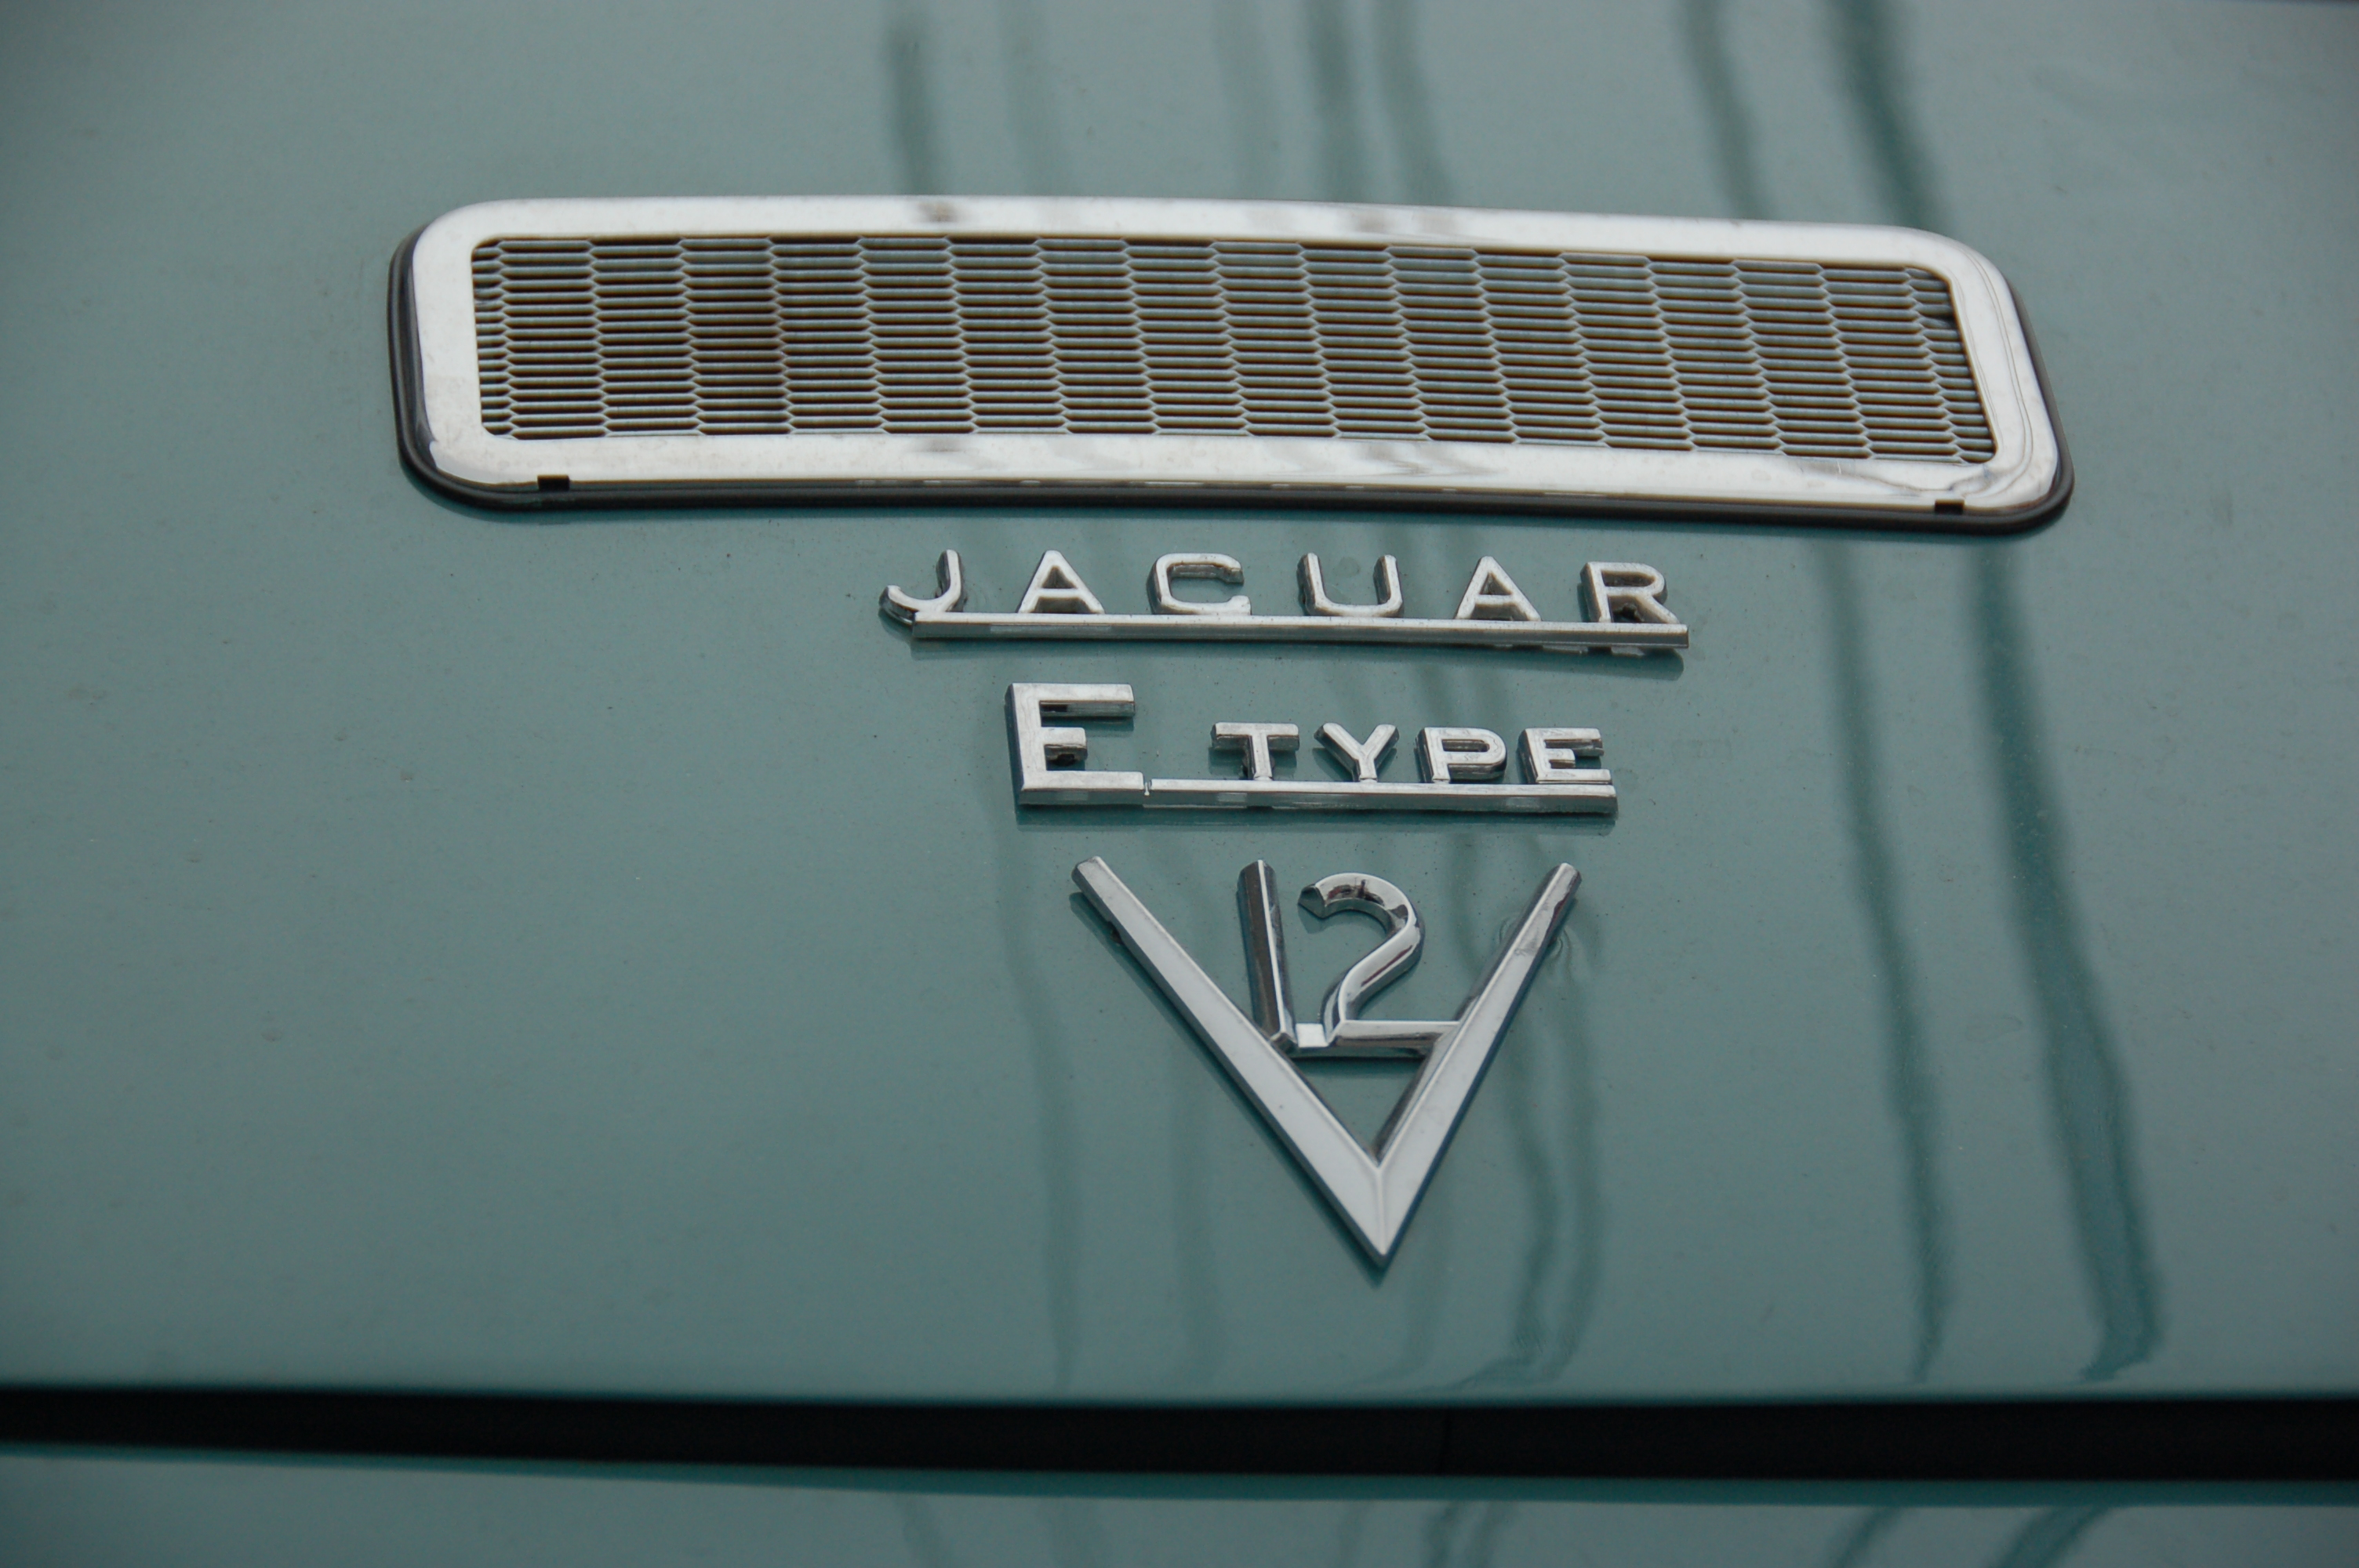 Old Jaguar E-type sports car: